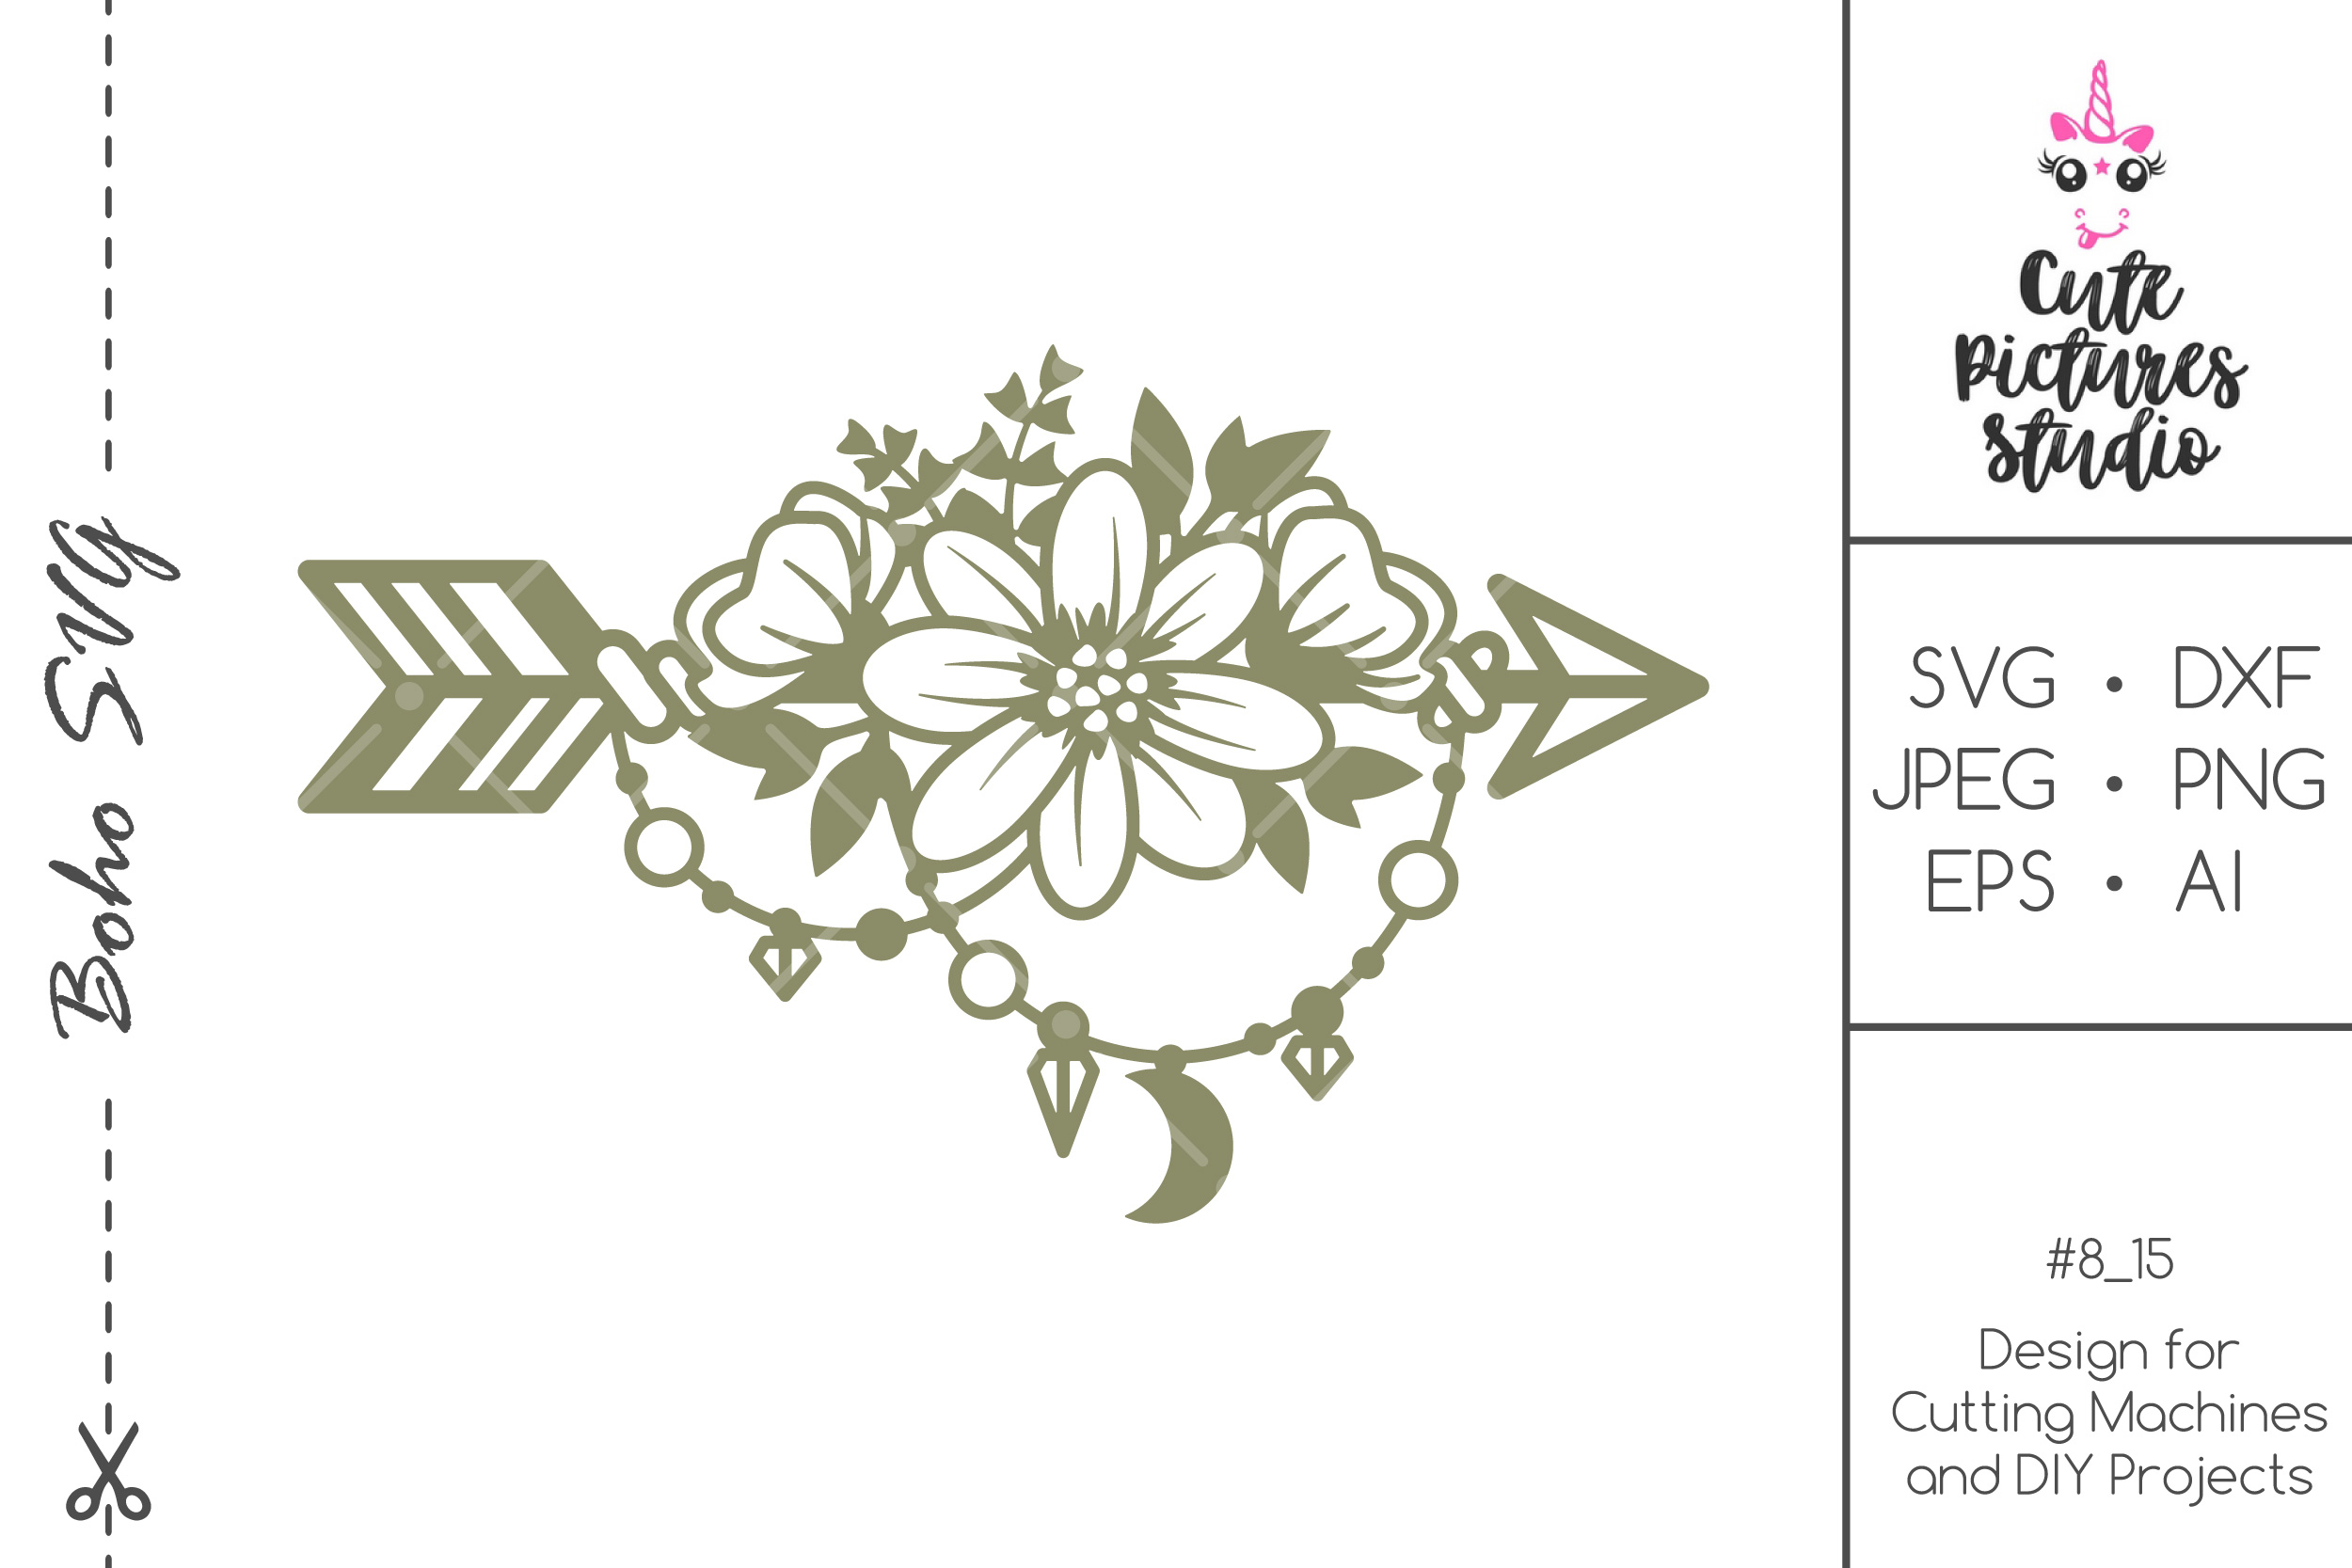 Boho Style Arrow With Flowers Graphic By Cutepicturesstudio